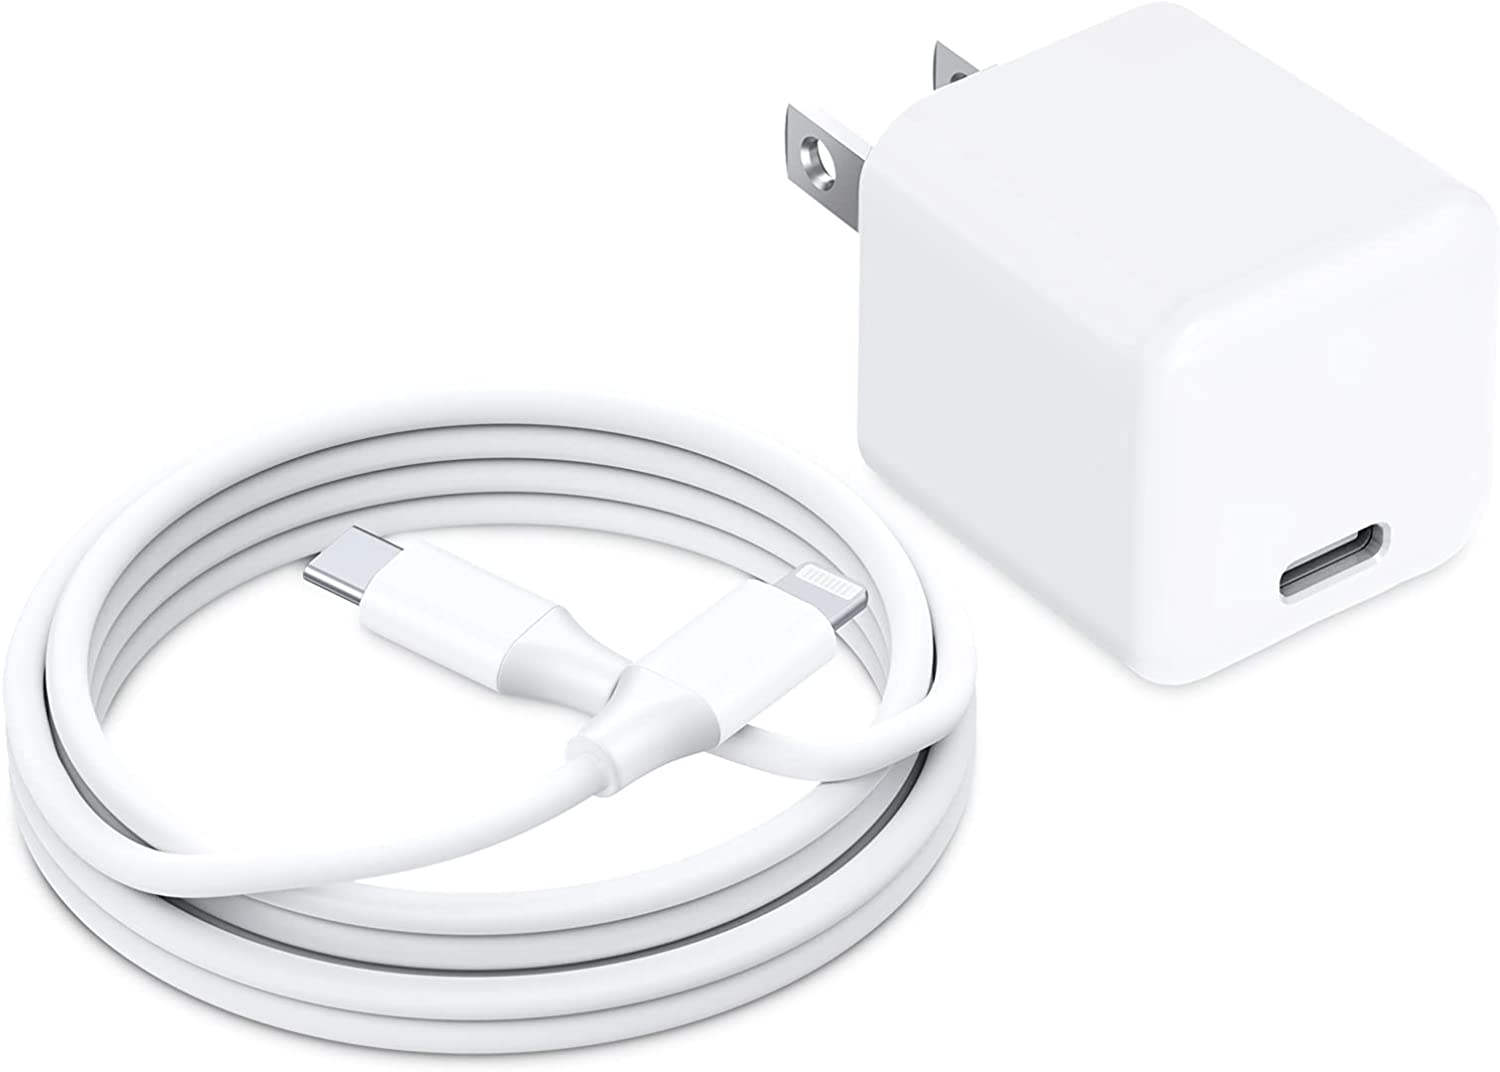 iPhone Fast Charger, FEGO 20W USB C Power Adapter Fast Charger with 6ft [Apple MFi Certified] Cable for for iPhone 12/12 Pro/12 Pro Max/12 Mini/11 Pro Max/XS Max/XR/X/,iPad Pro,AirPods Pro and More